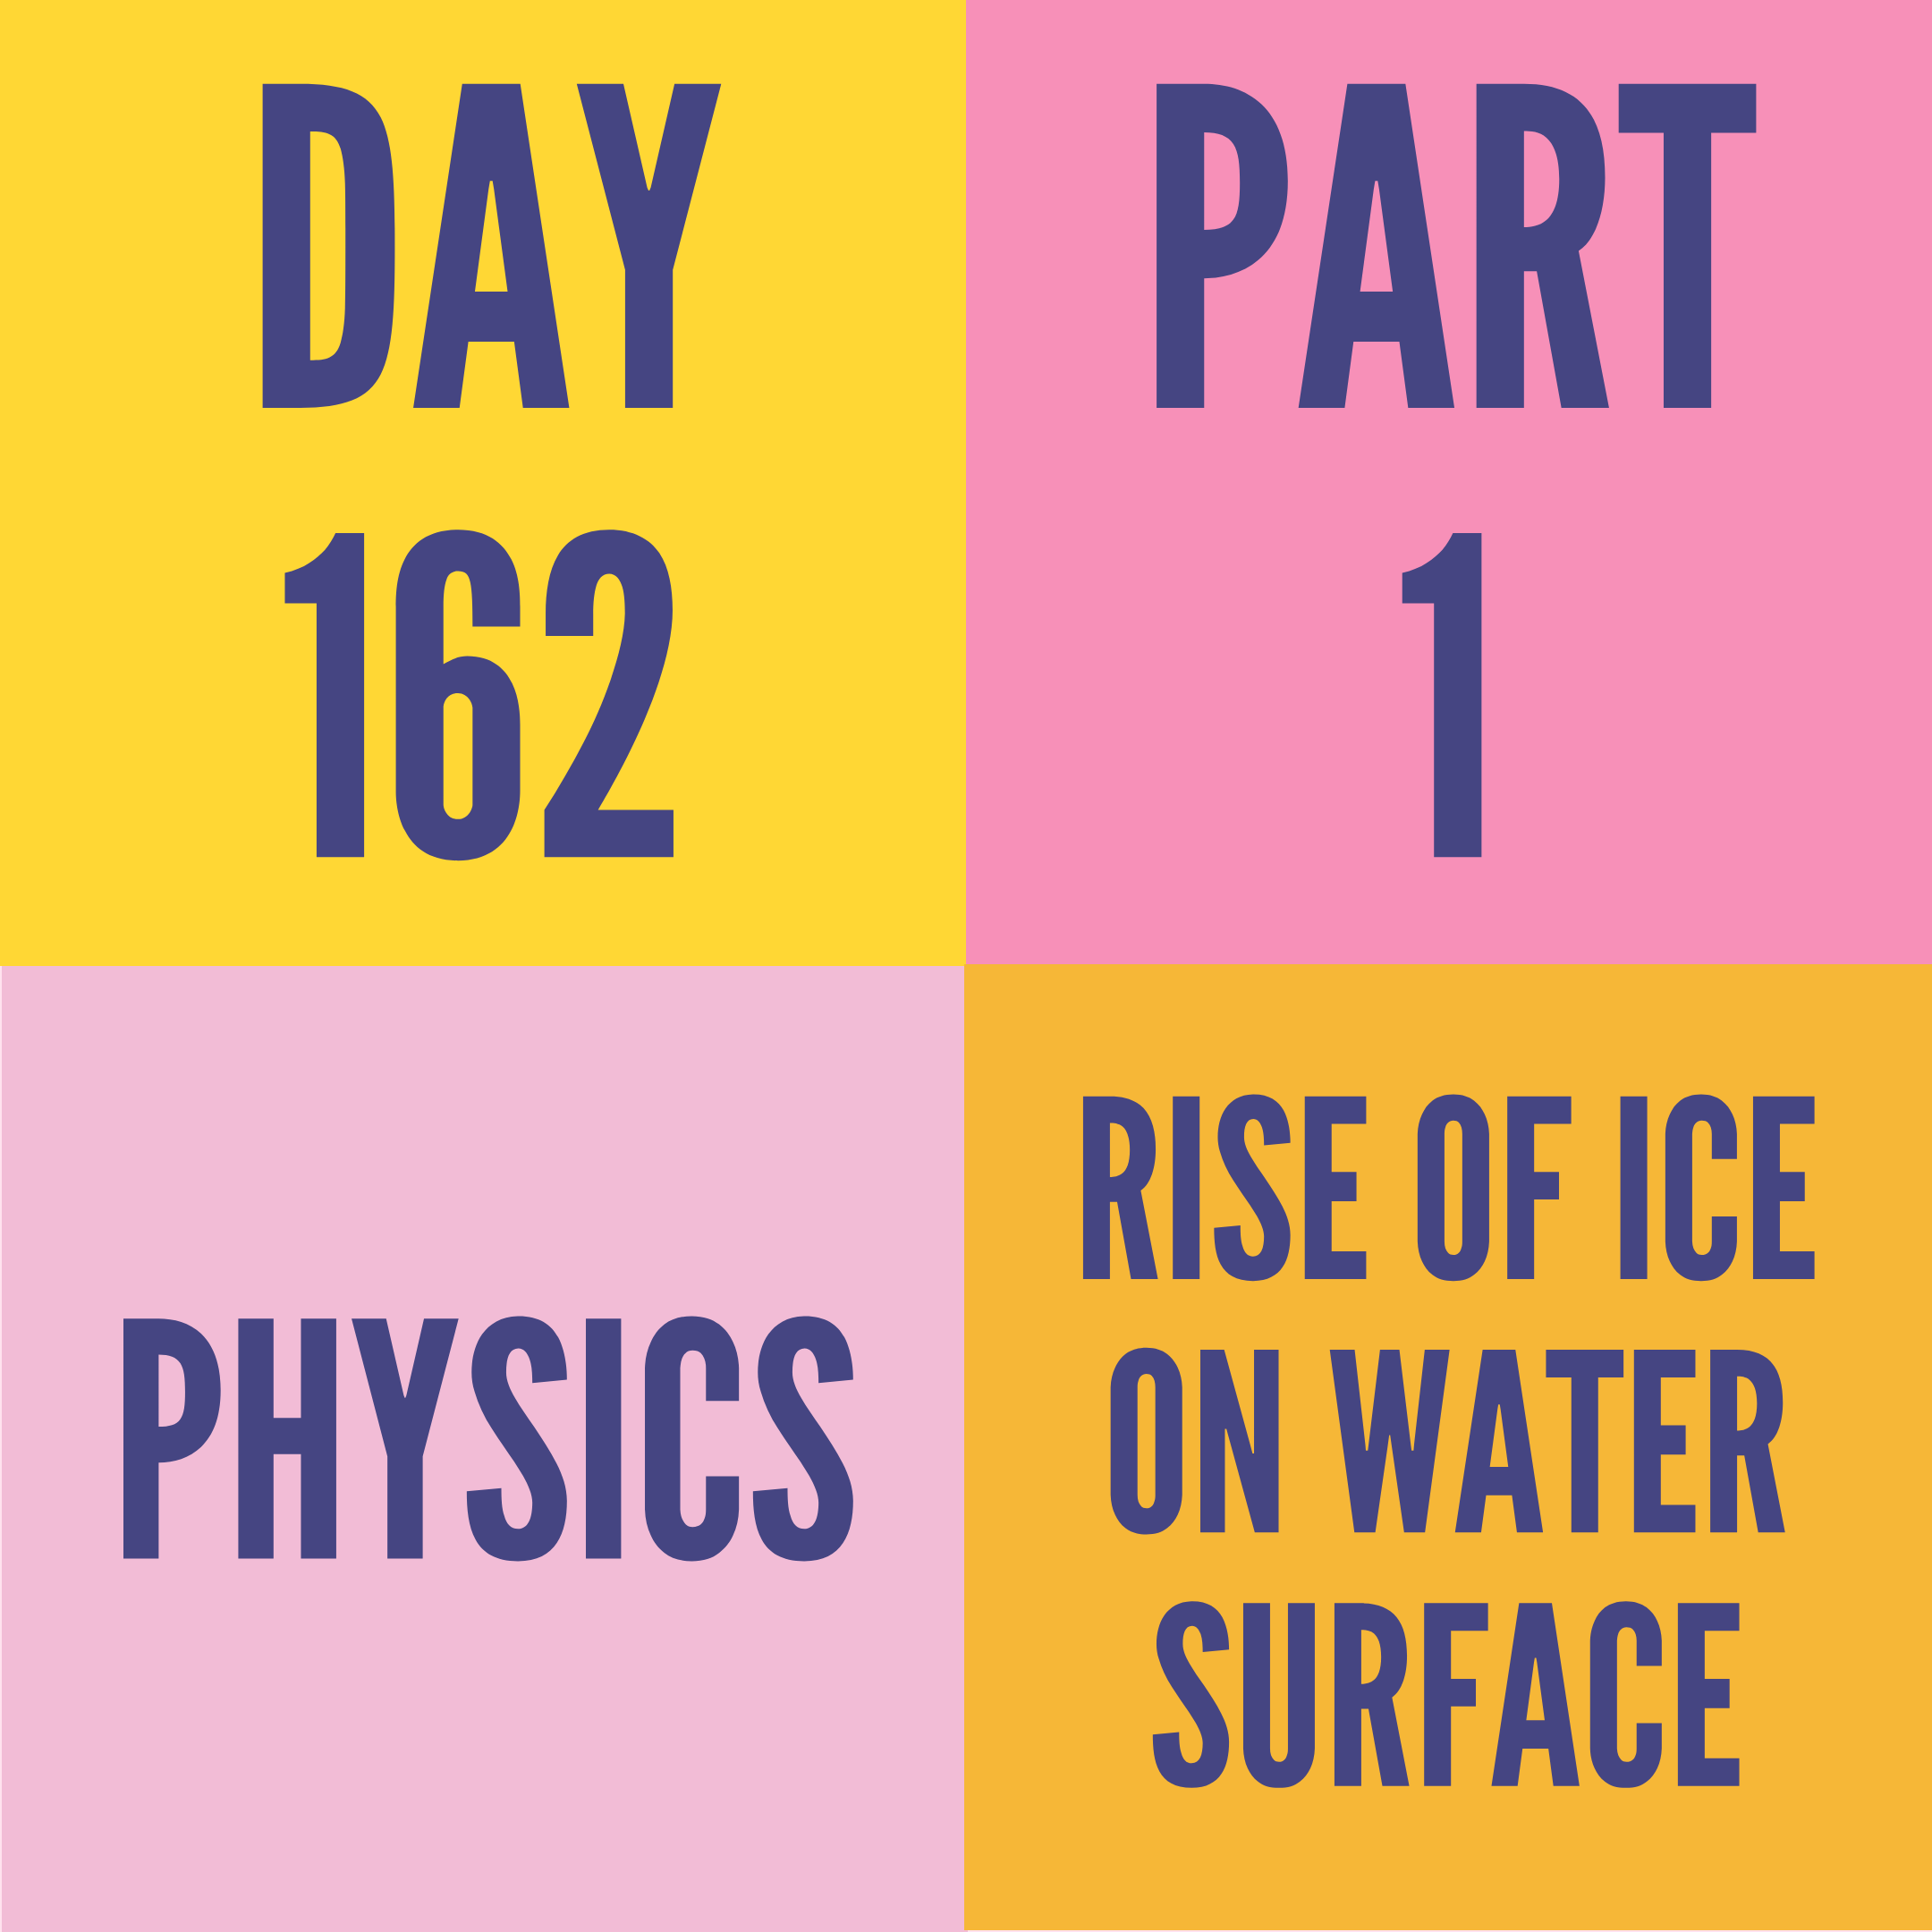 DAY-162 PART-1 RISE OF ICE ON WATER SURFACE